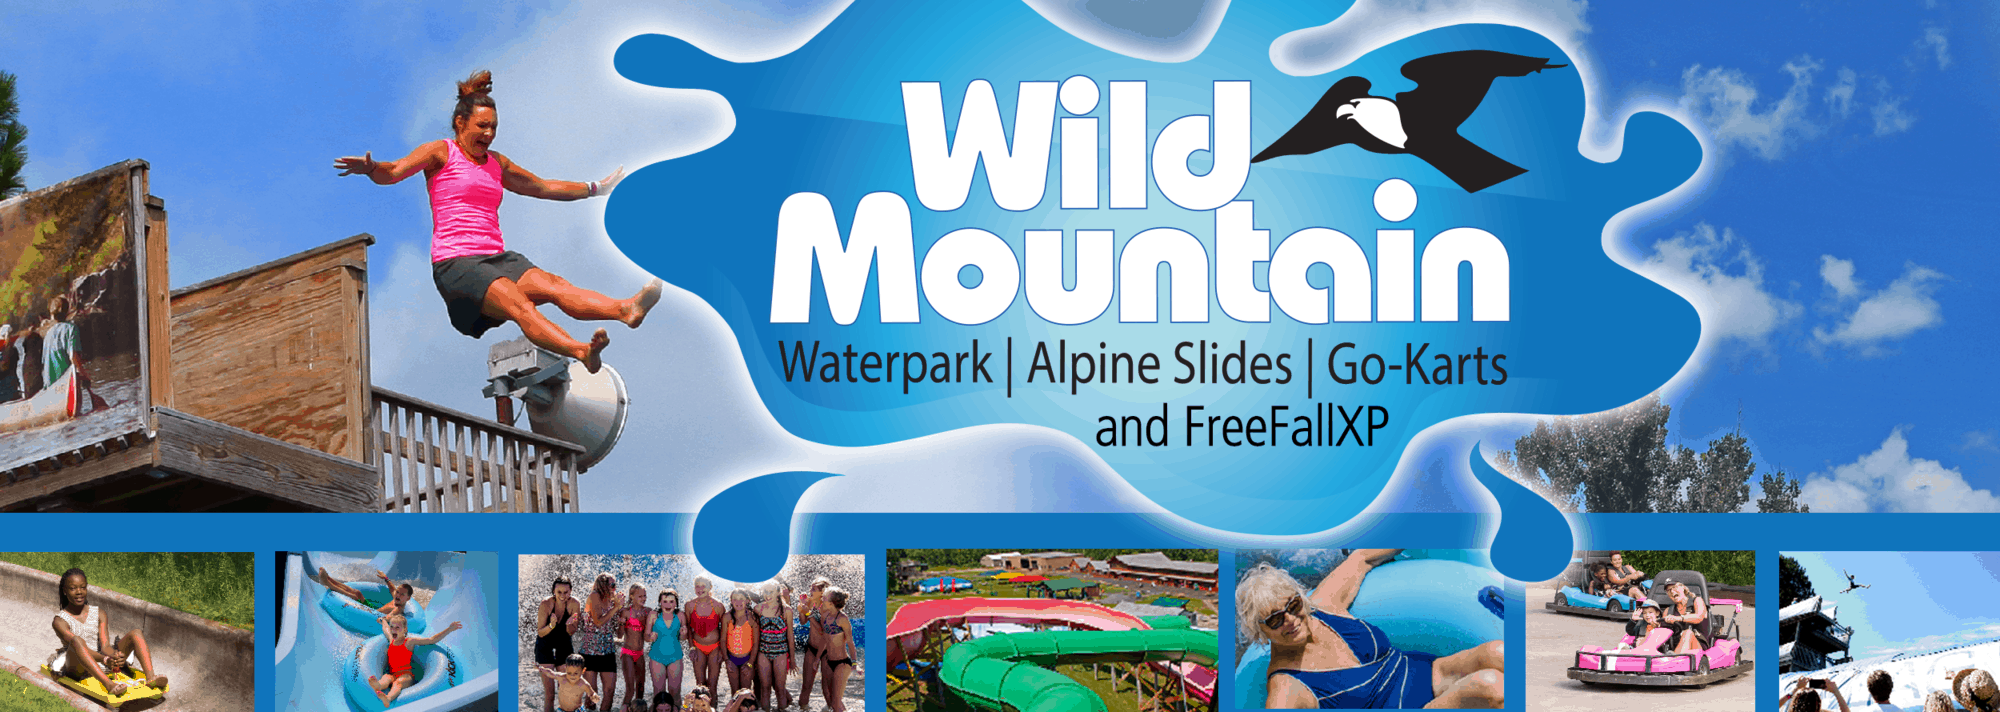 Wild Mountain Recreation Summer